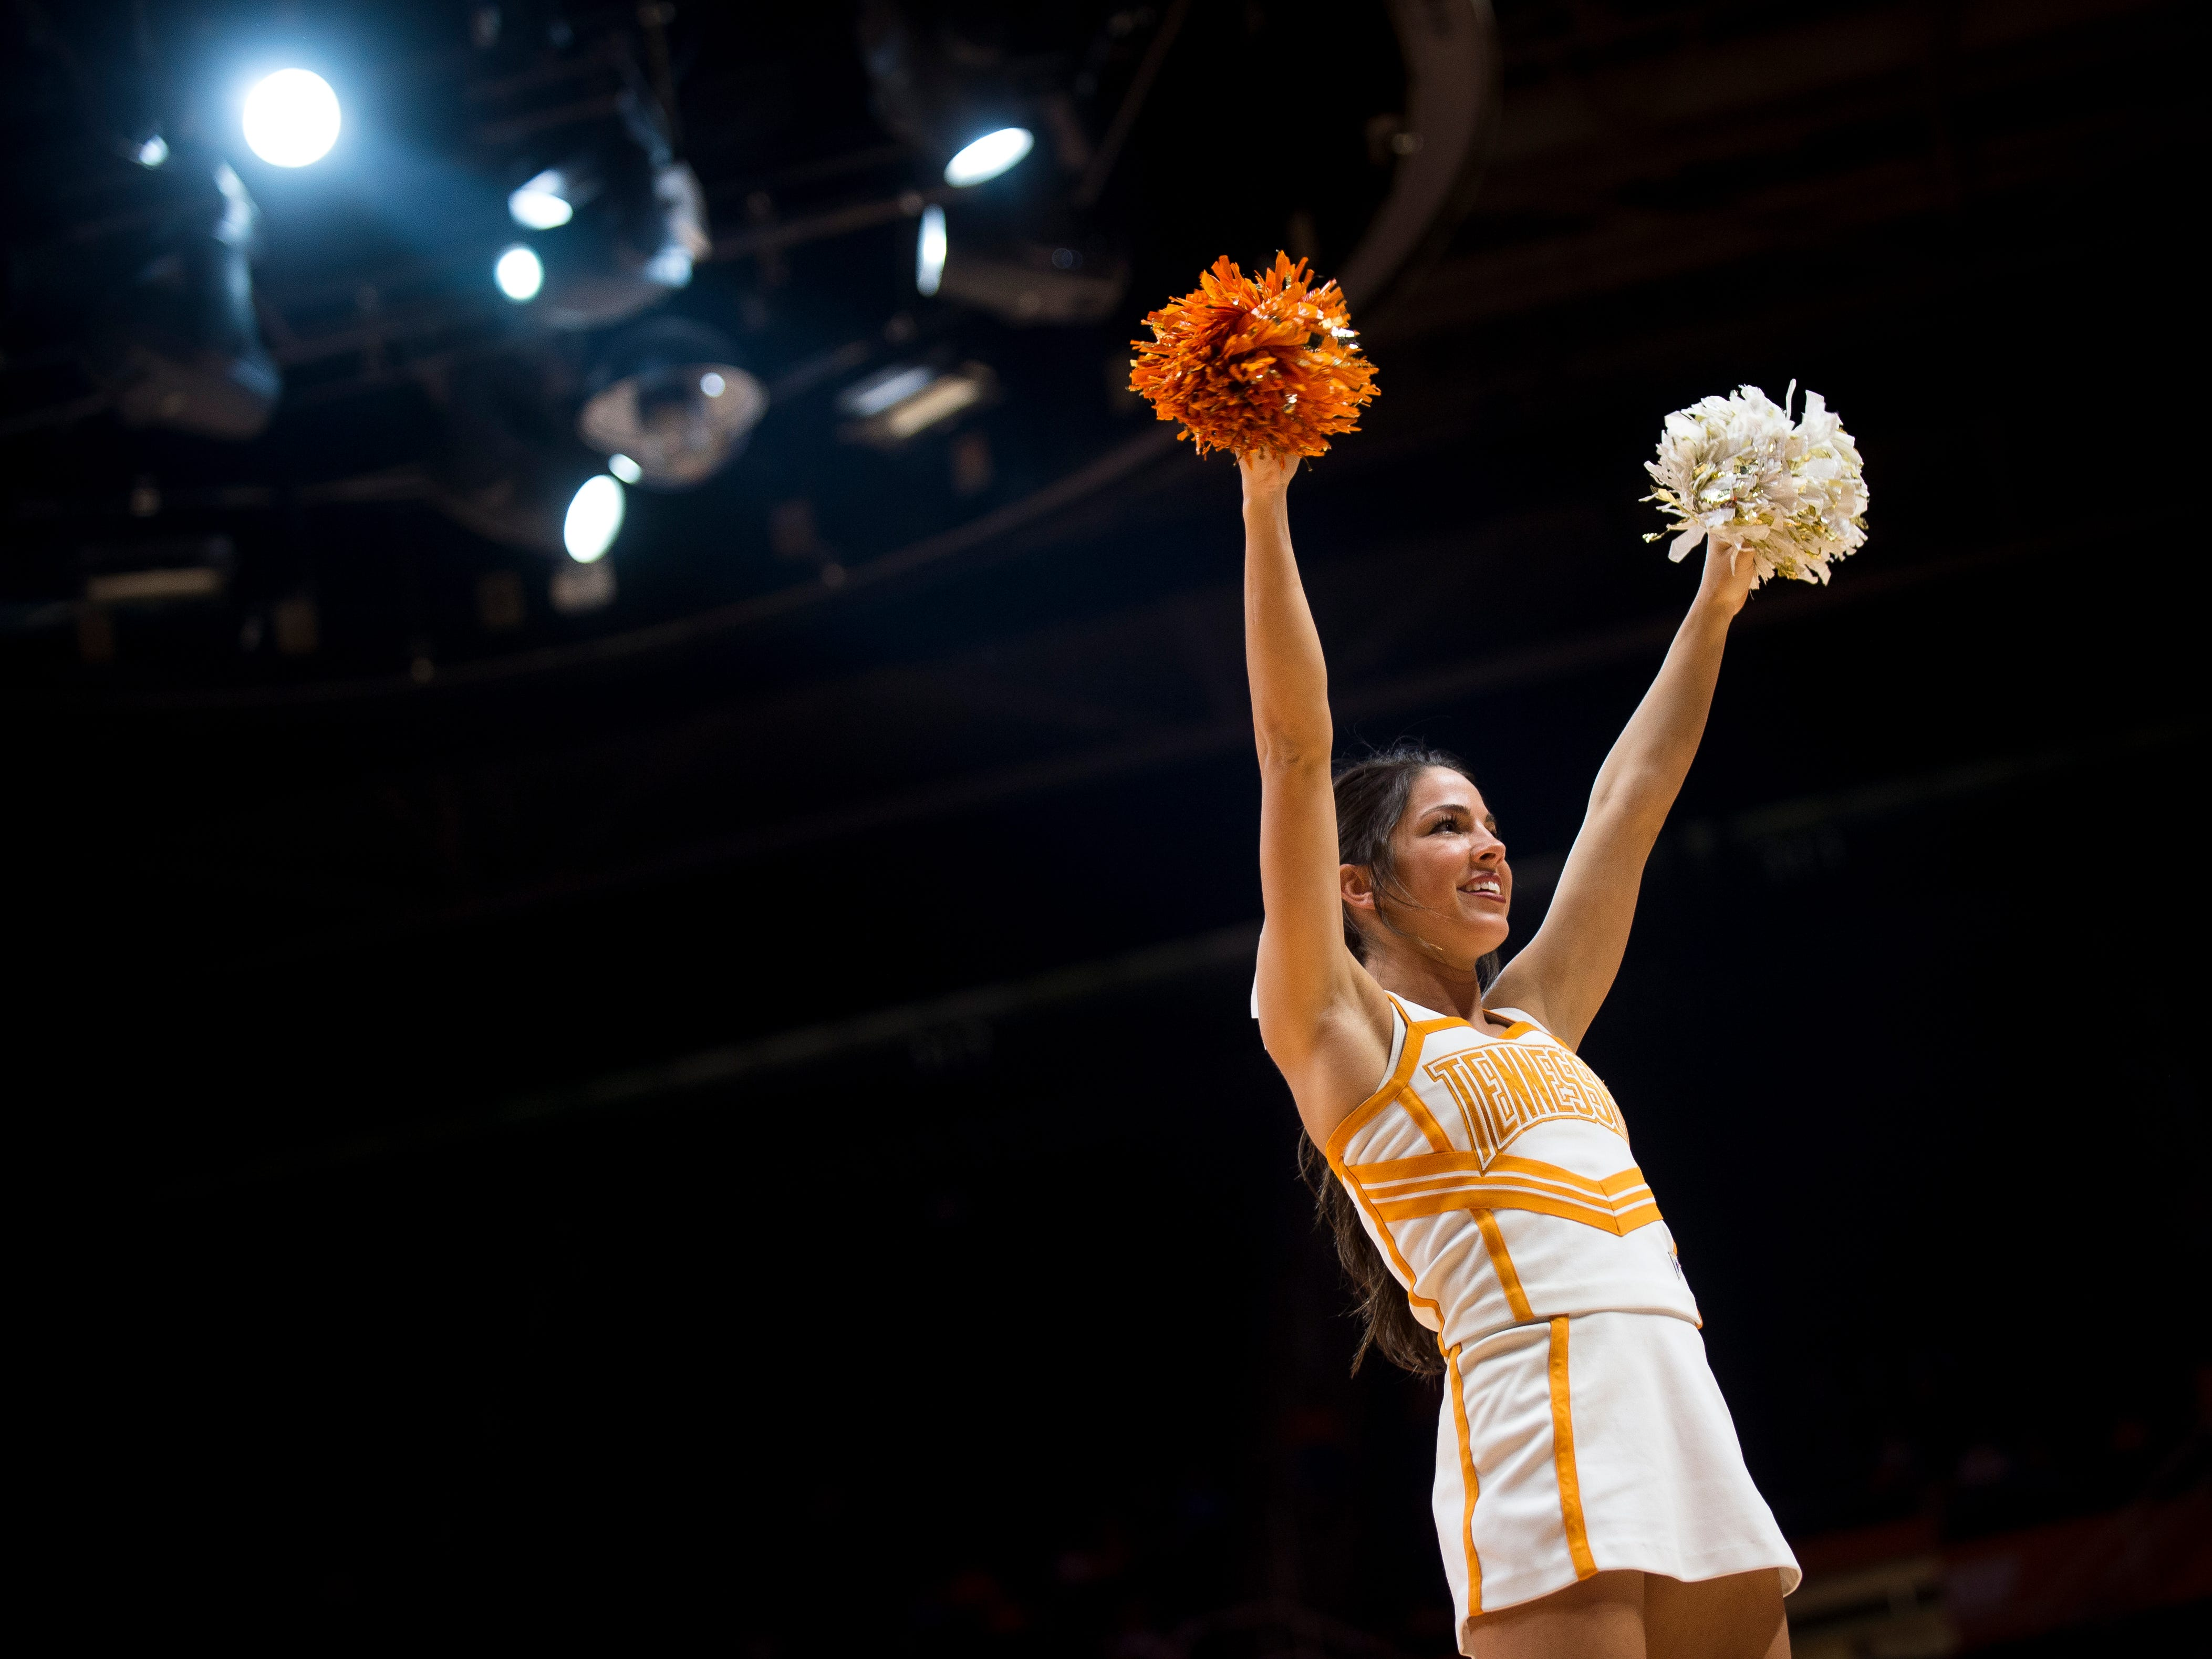 Tennessee cheerleaders during a time out during Tennessee's game against Vanderbilt at Thompson-Boling Arena on Wednesday, Feb. 22, 2017. Tennessee lost to Vanderbilt 67-56.